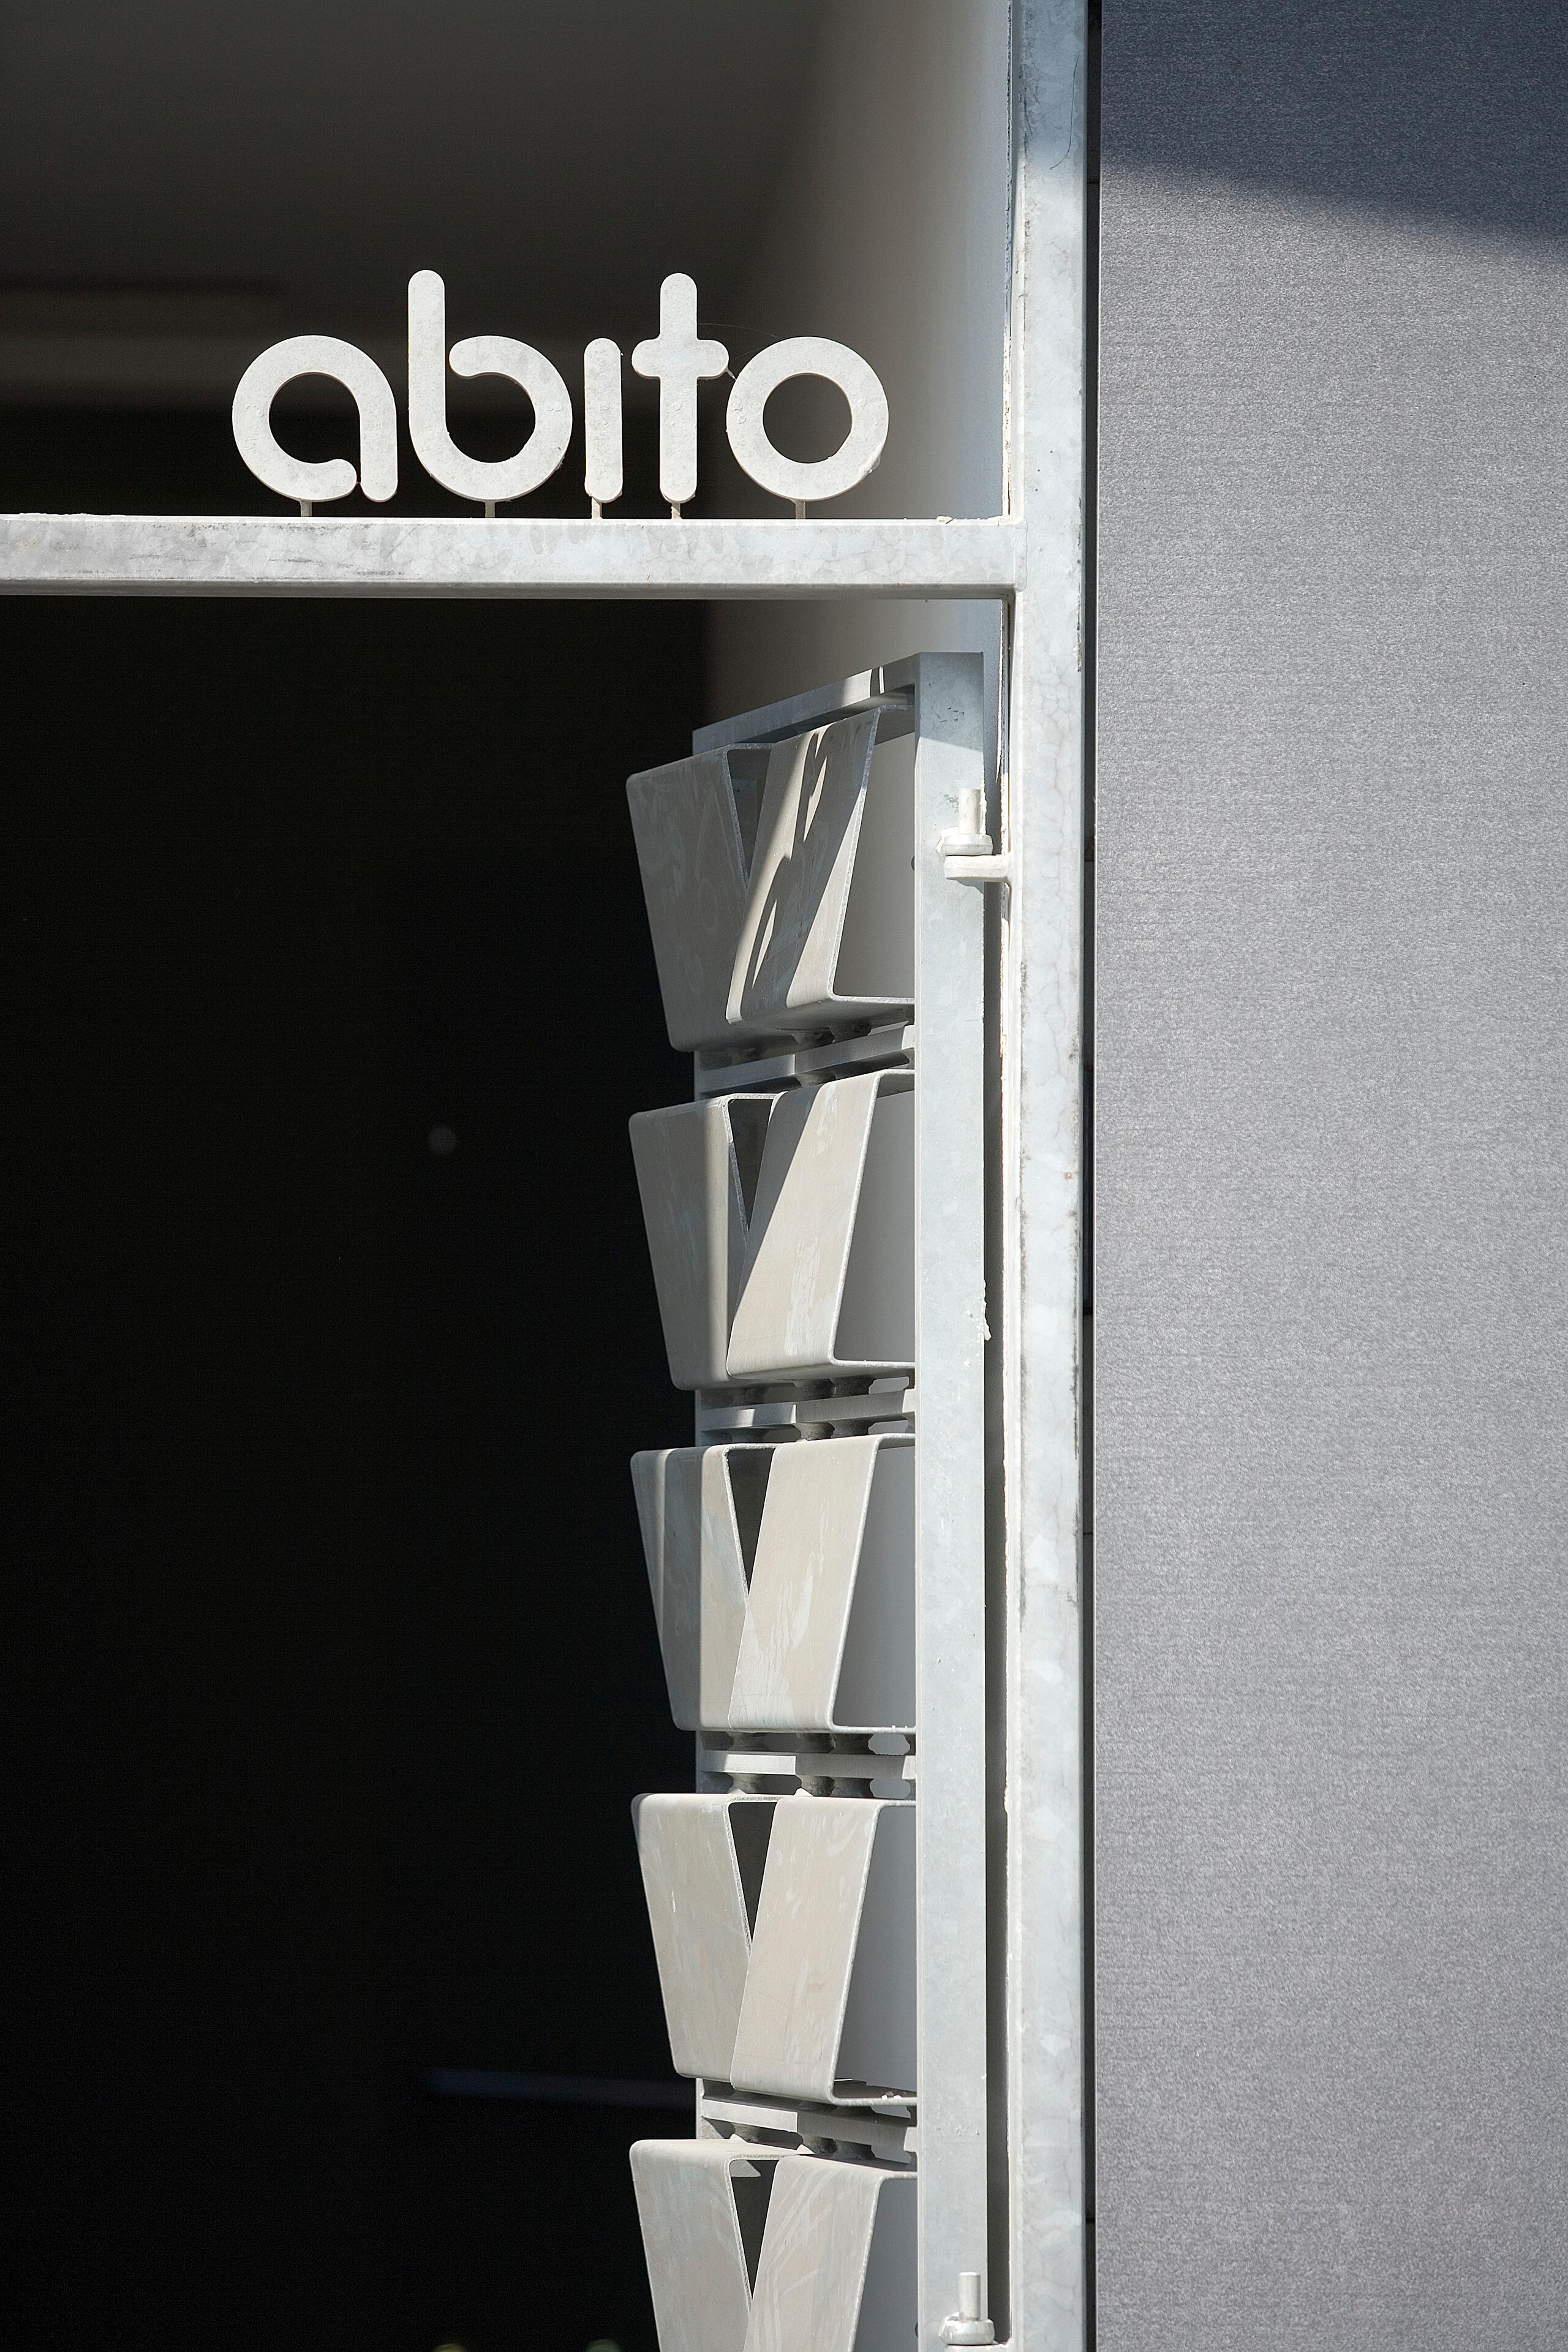 Abito signage over a doorway